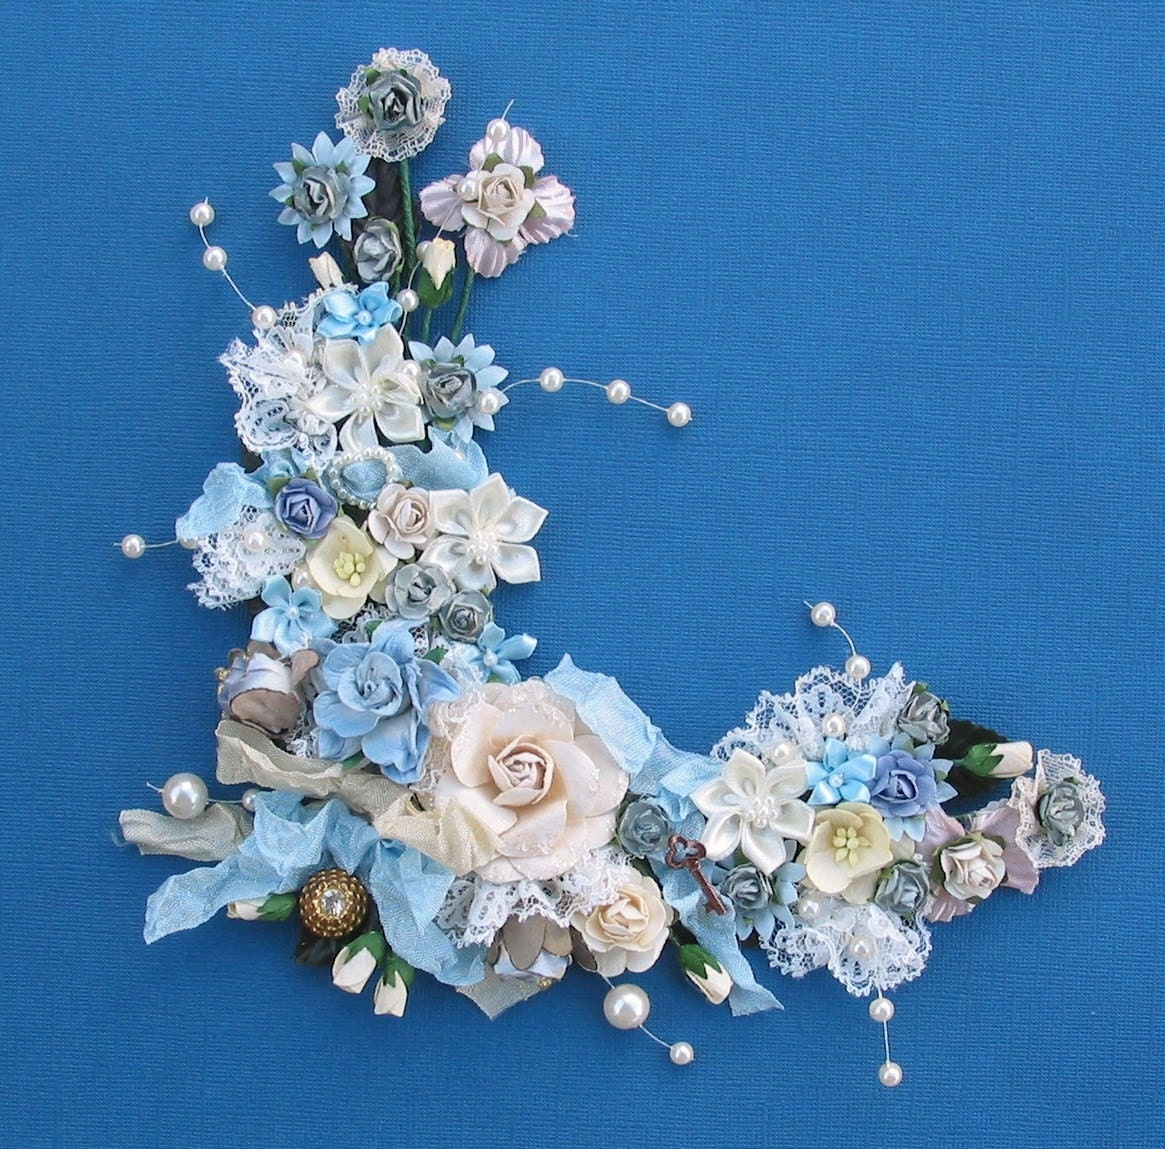 Blue Pearls and Lace Corner Bouquet for Scrapbooking